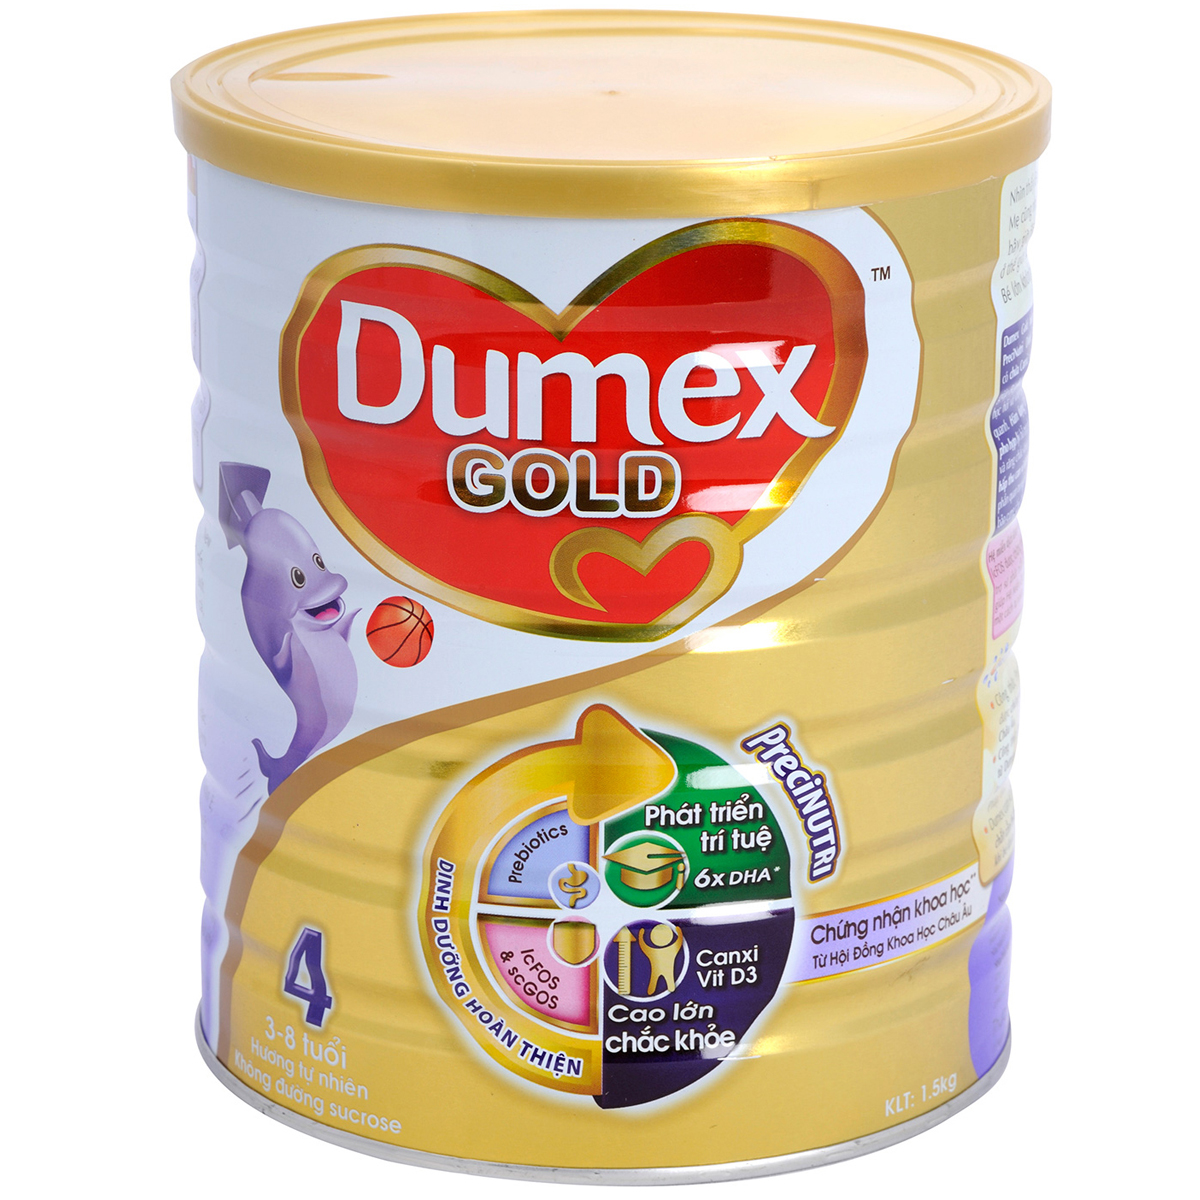 Sua bot Dumex Gold so 4 1,5 kg